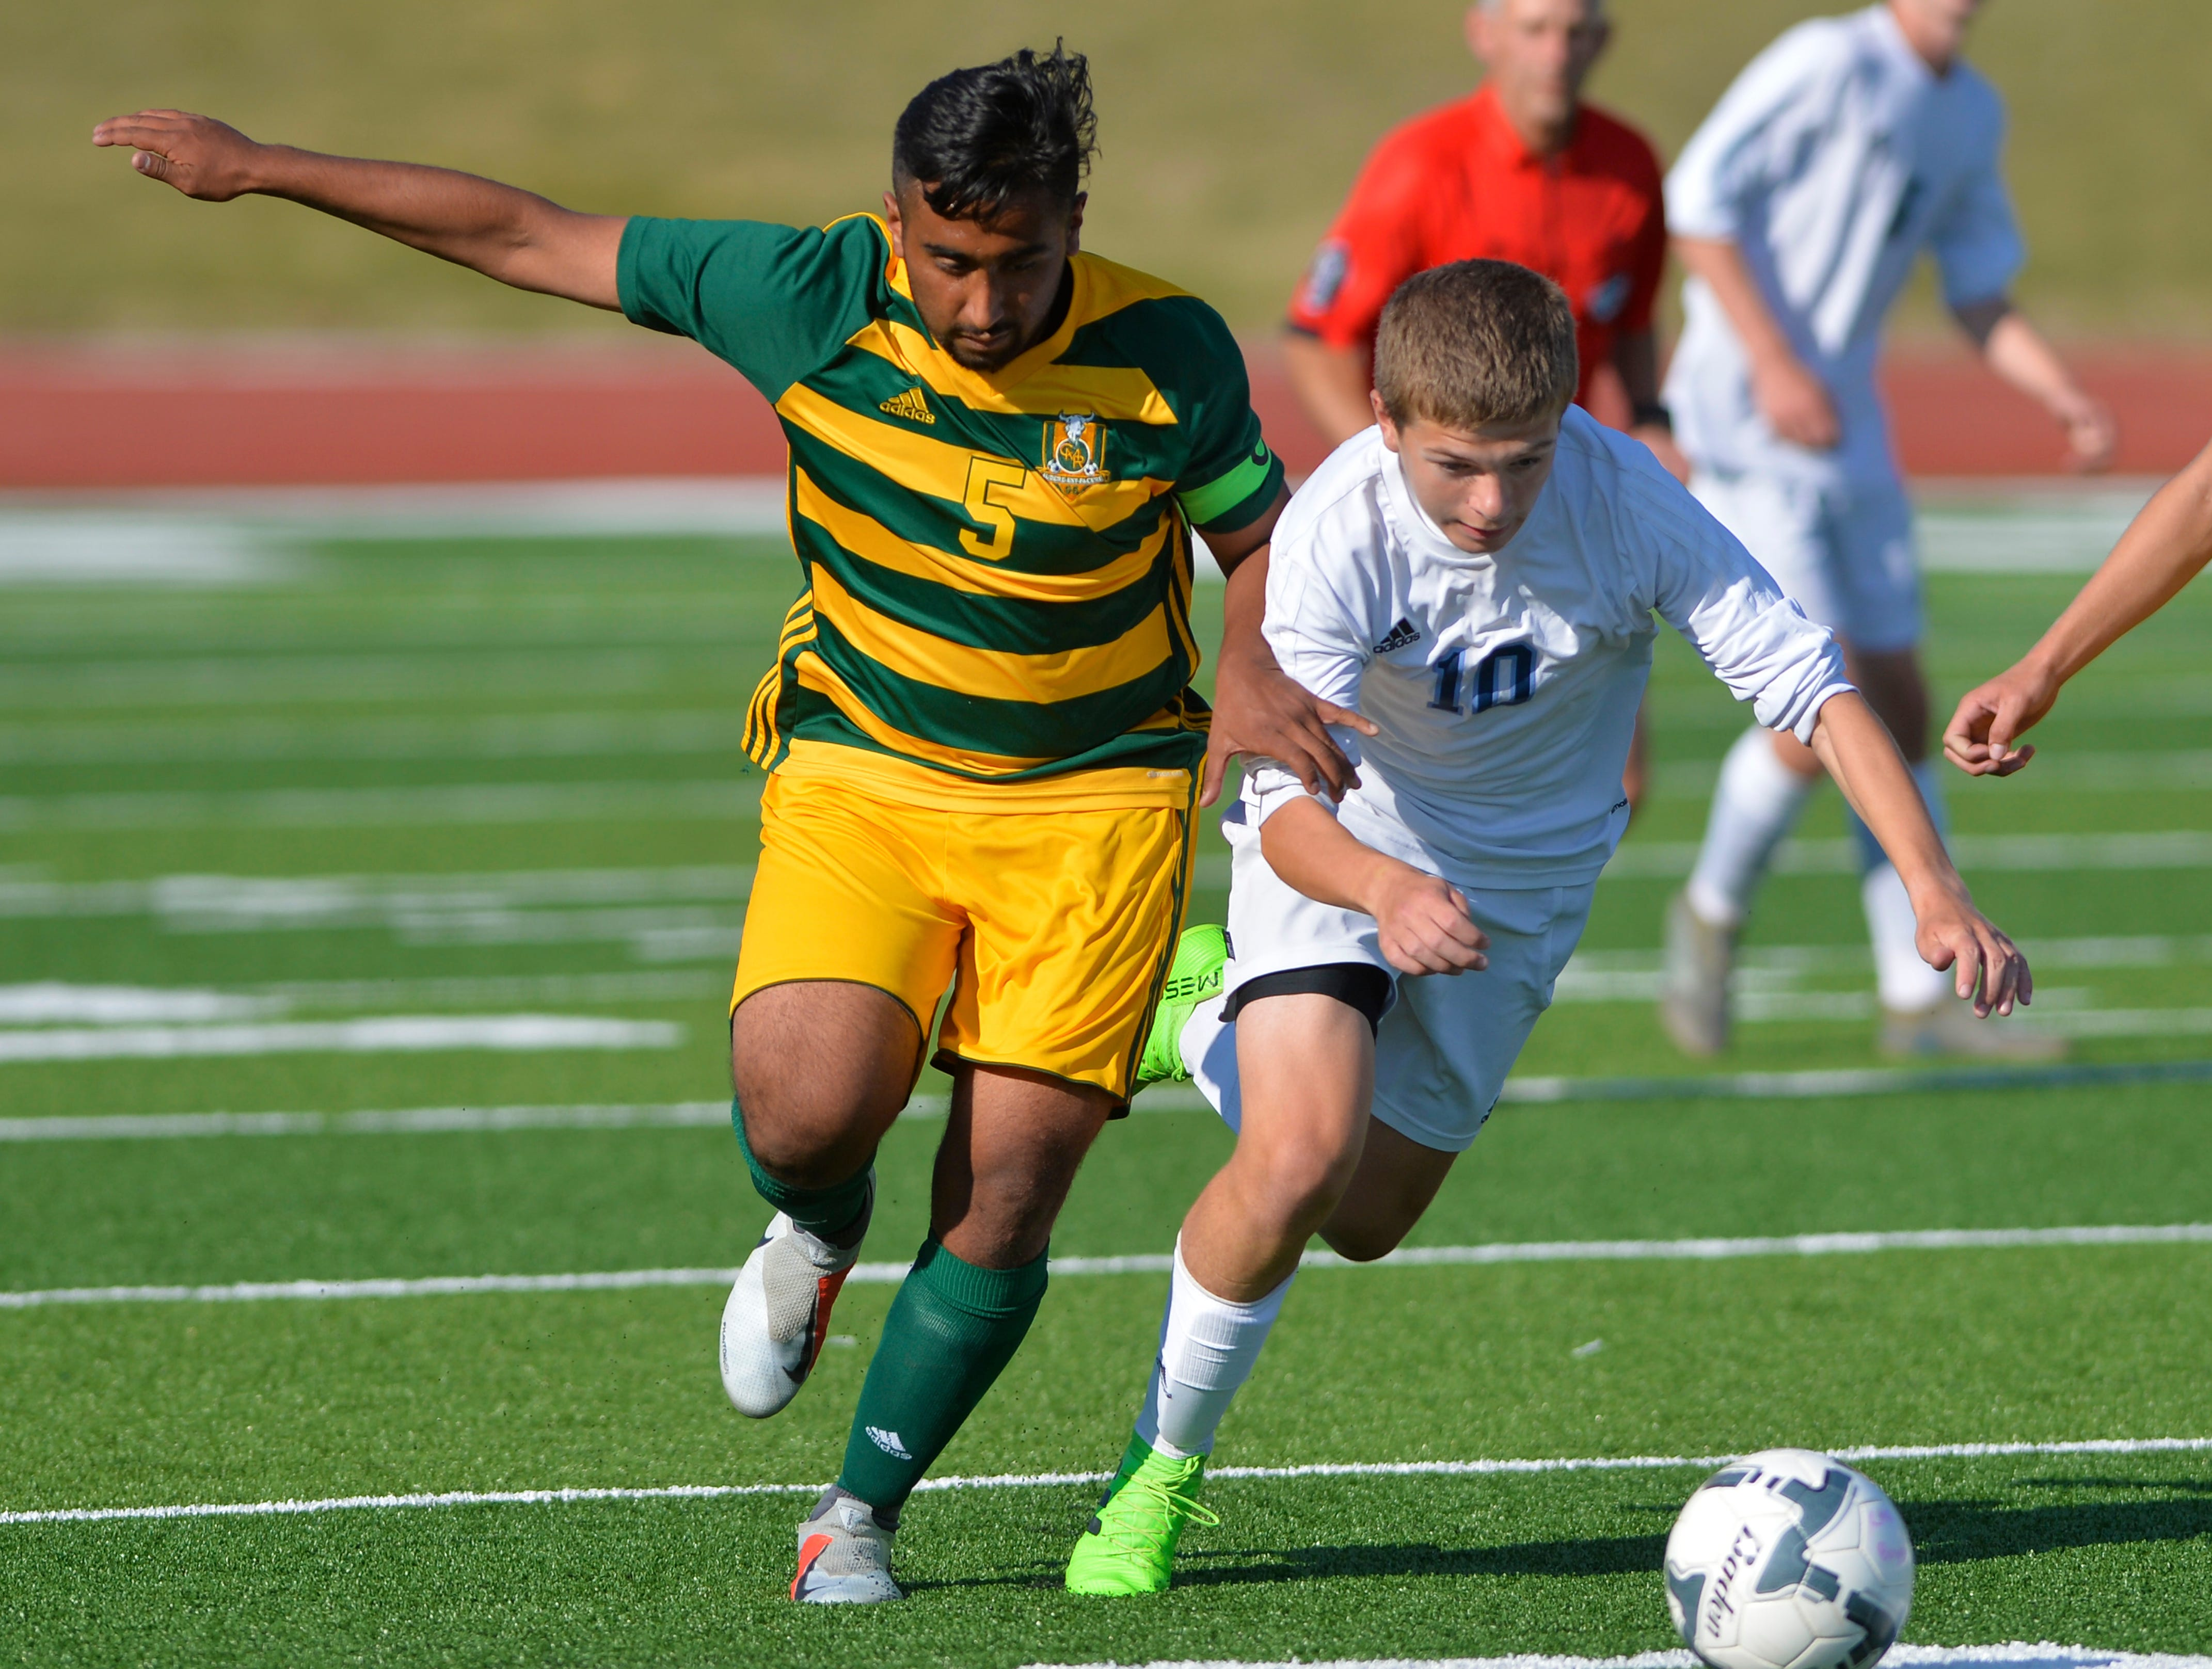 CMR's Mario Roque and Great Falls High's Corbyn Smyth work for control of the ball during the crosstown soccer match at Memorial Stadium, Thursday, Sept. 6, 2018.